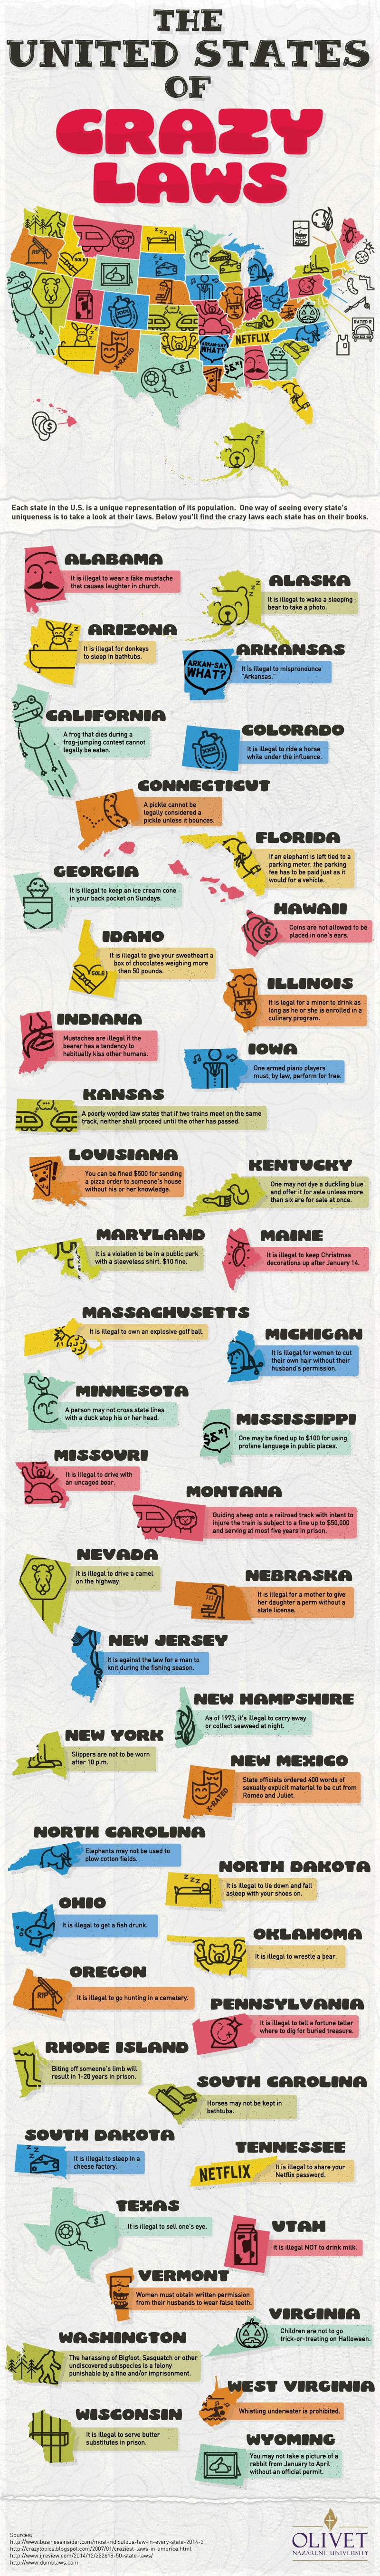 he weirdest and most outdated laws in each state